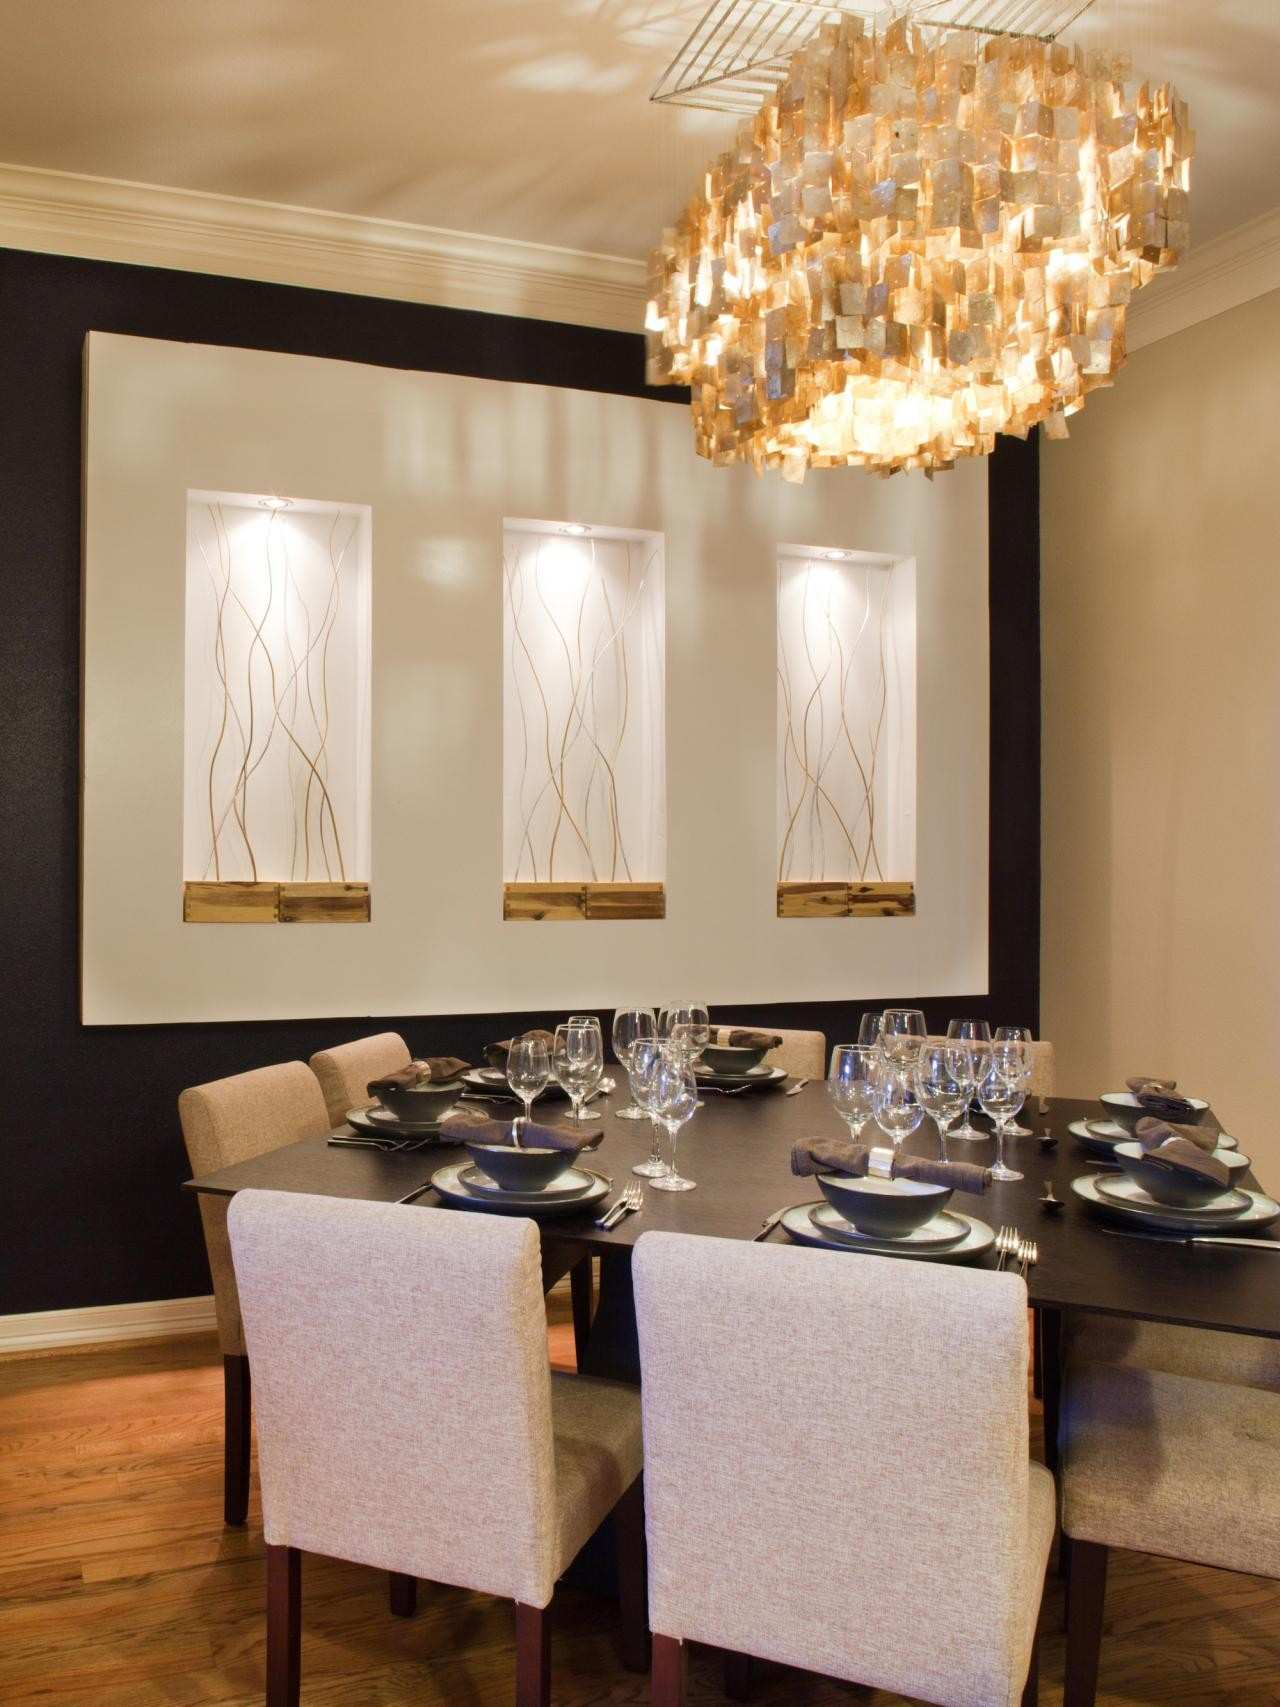 Diy Dining Room Dining Wall Decor Outstanding Decorative Wall Panels